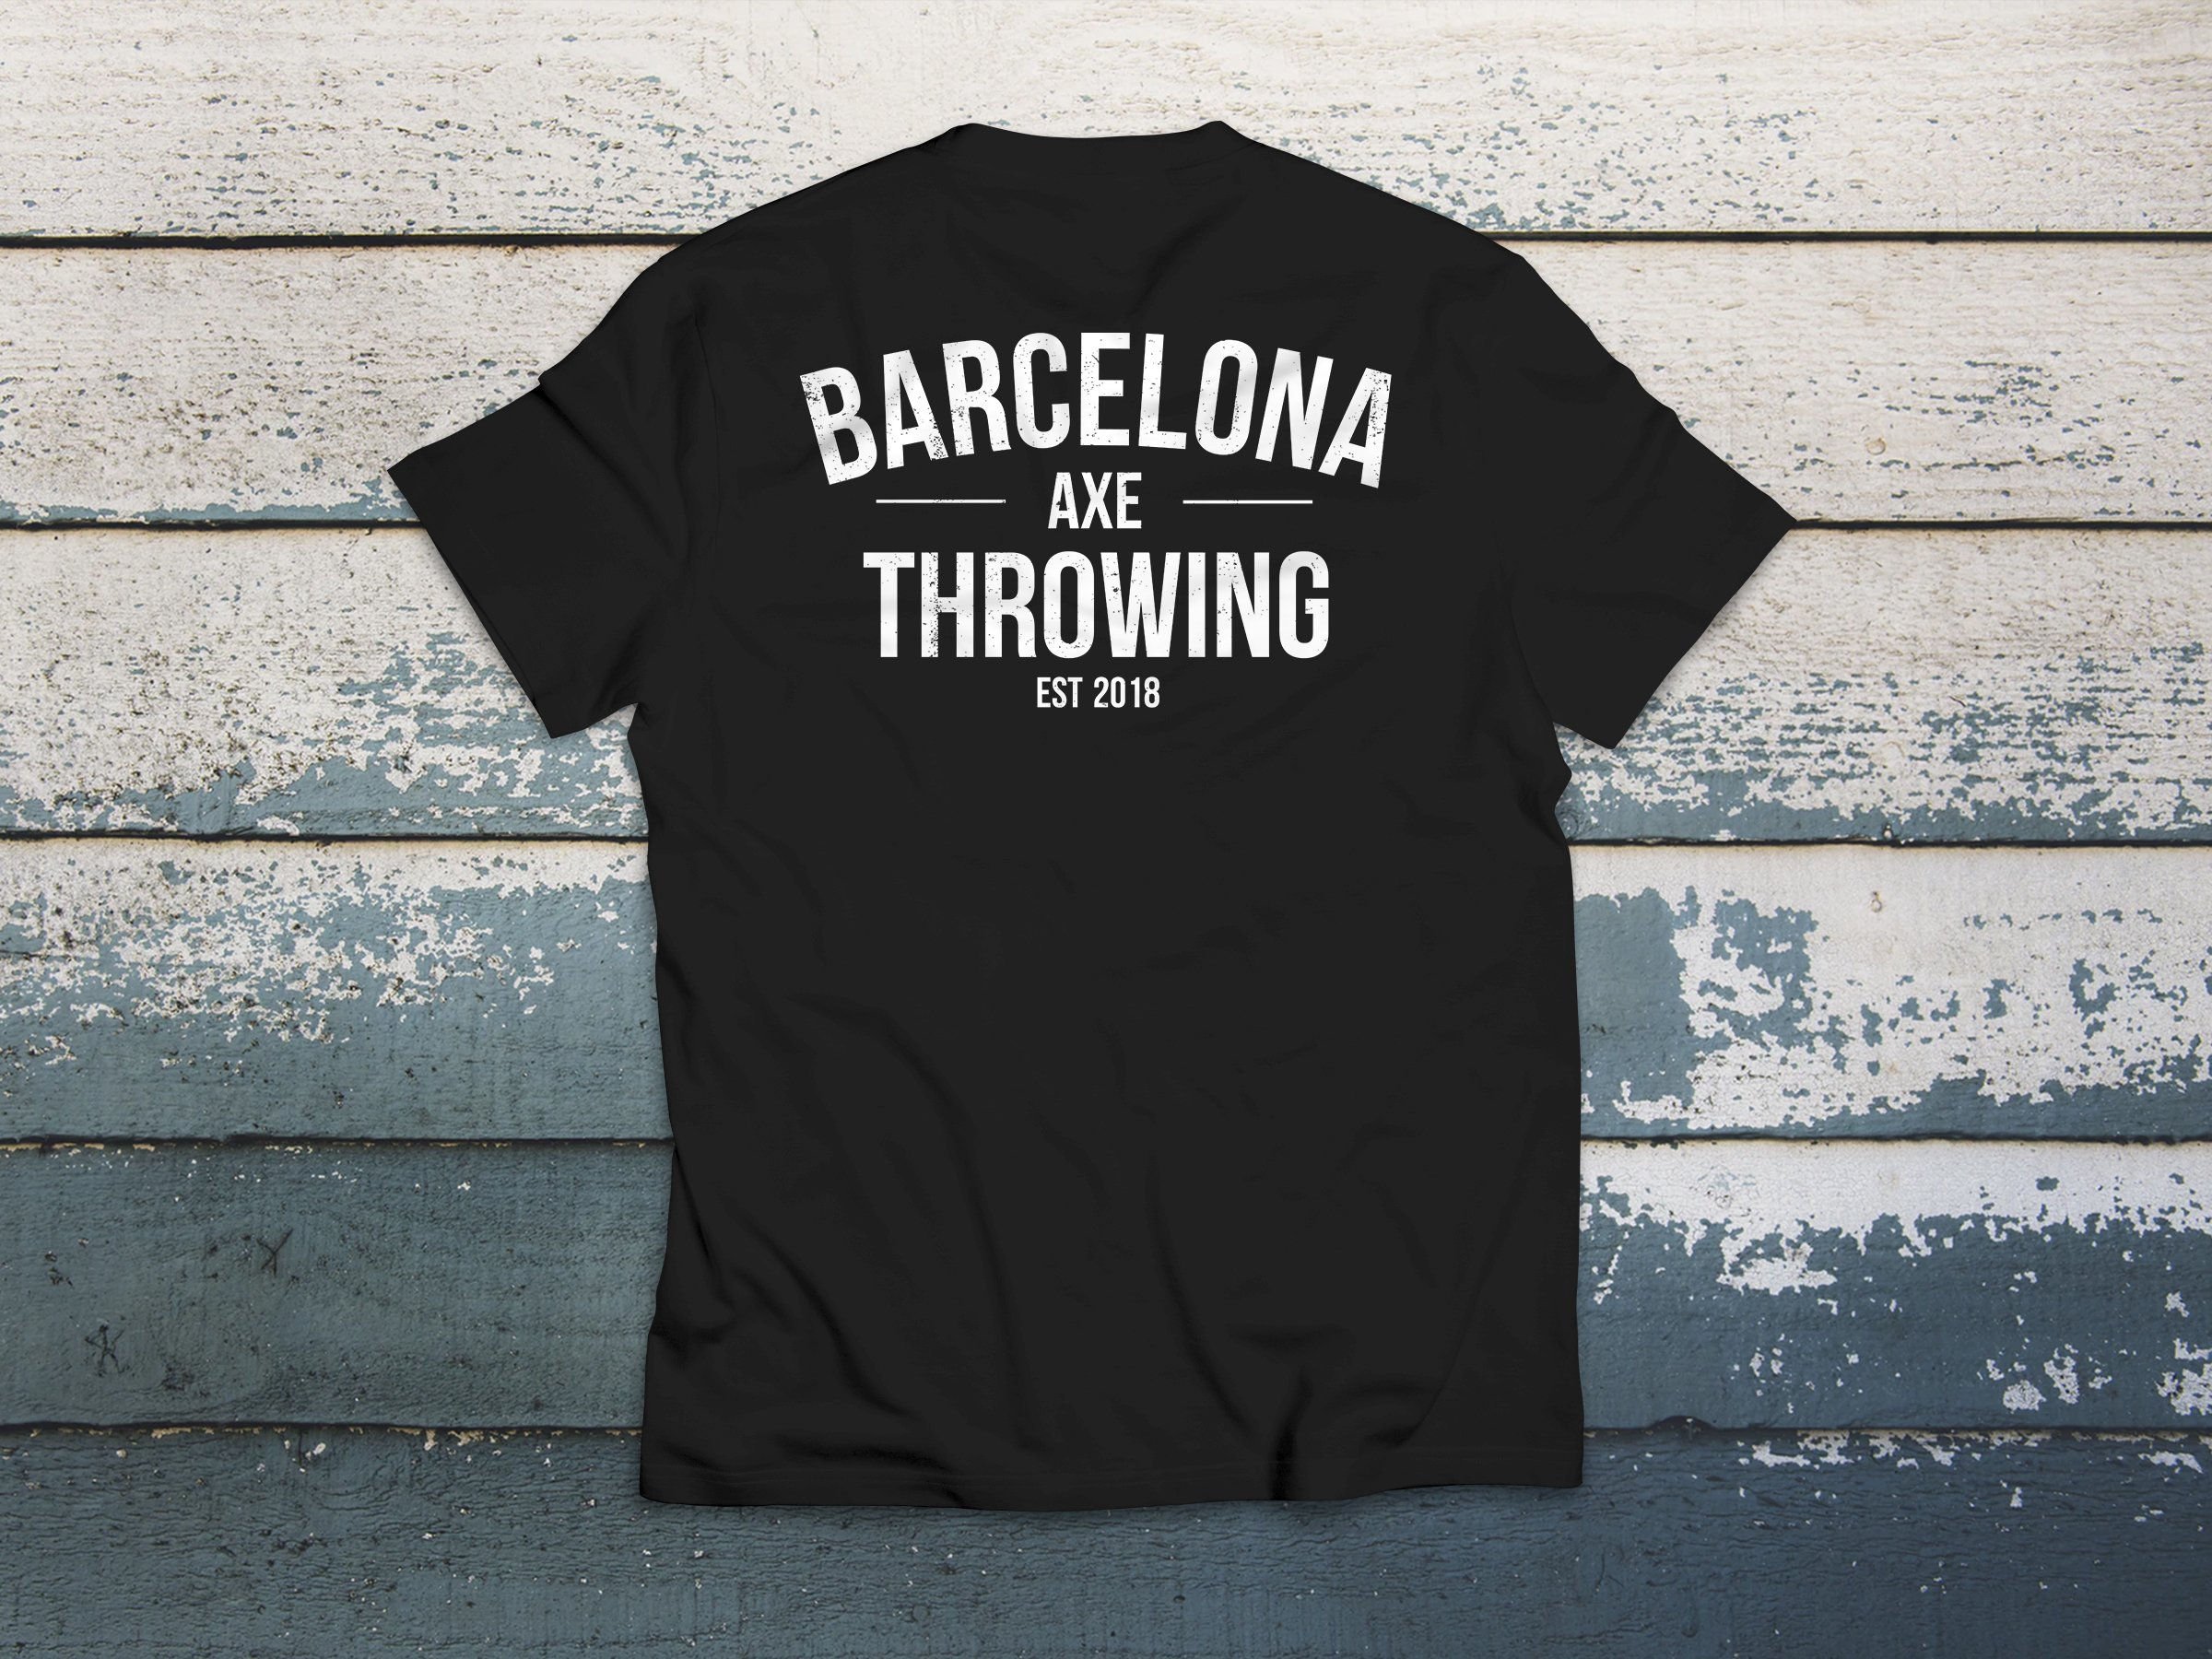 camiseta j. black barcelona axe throwing